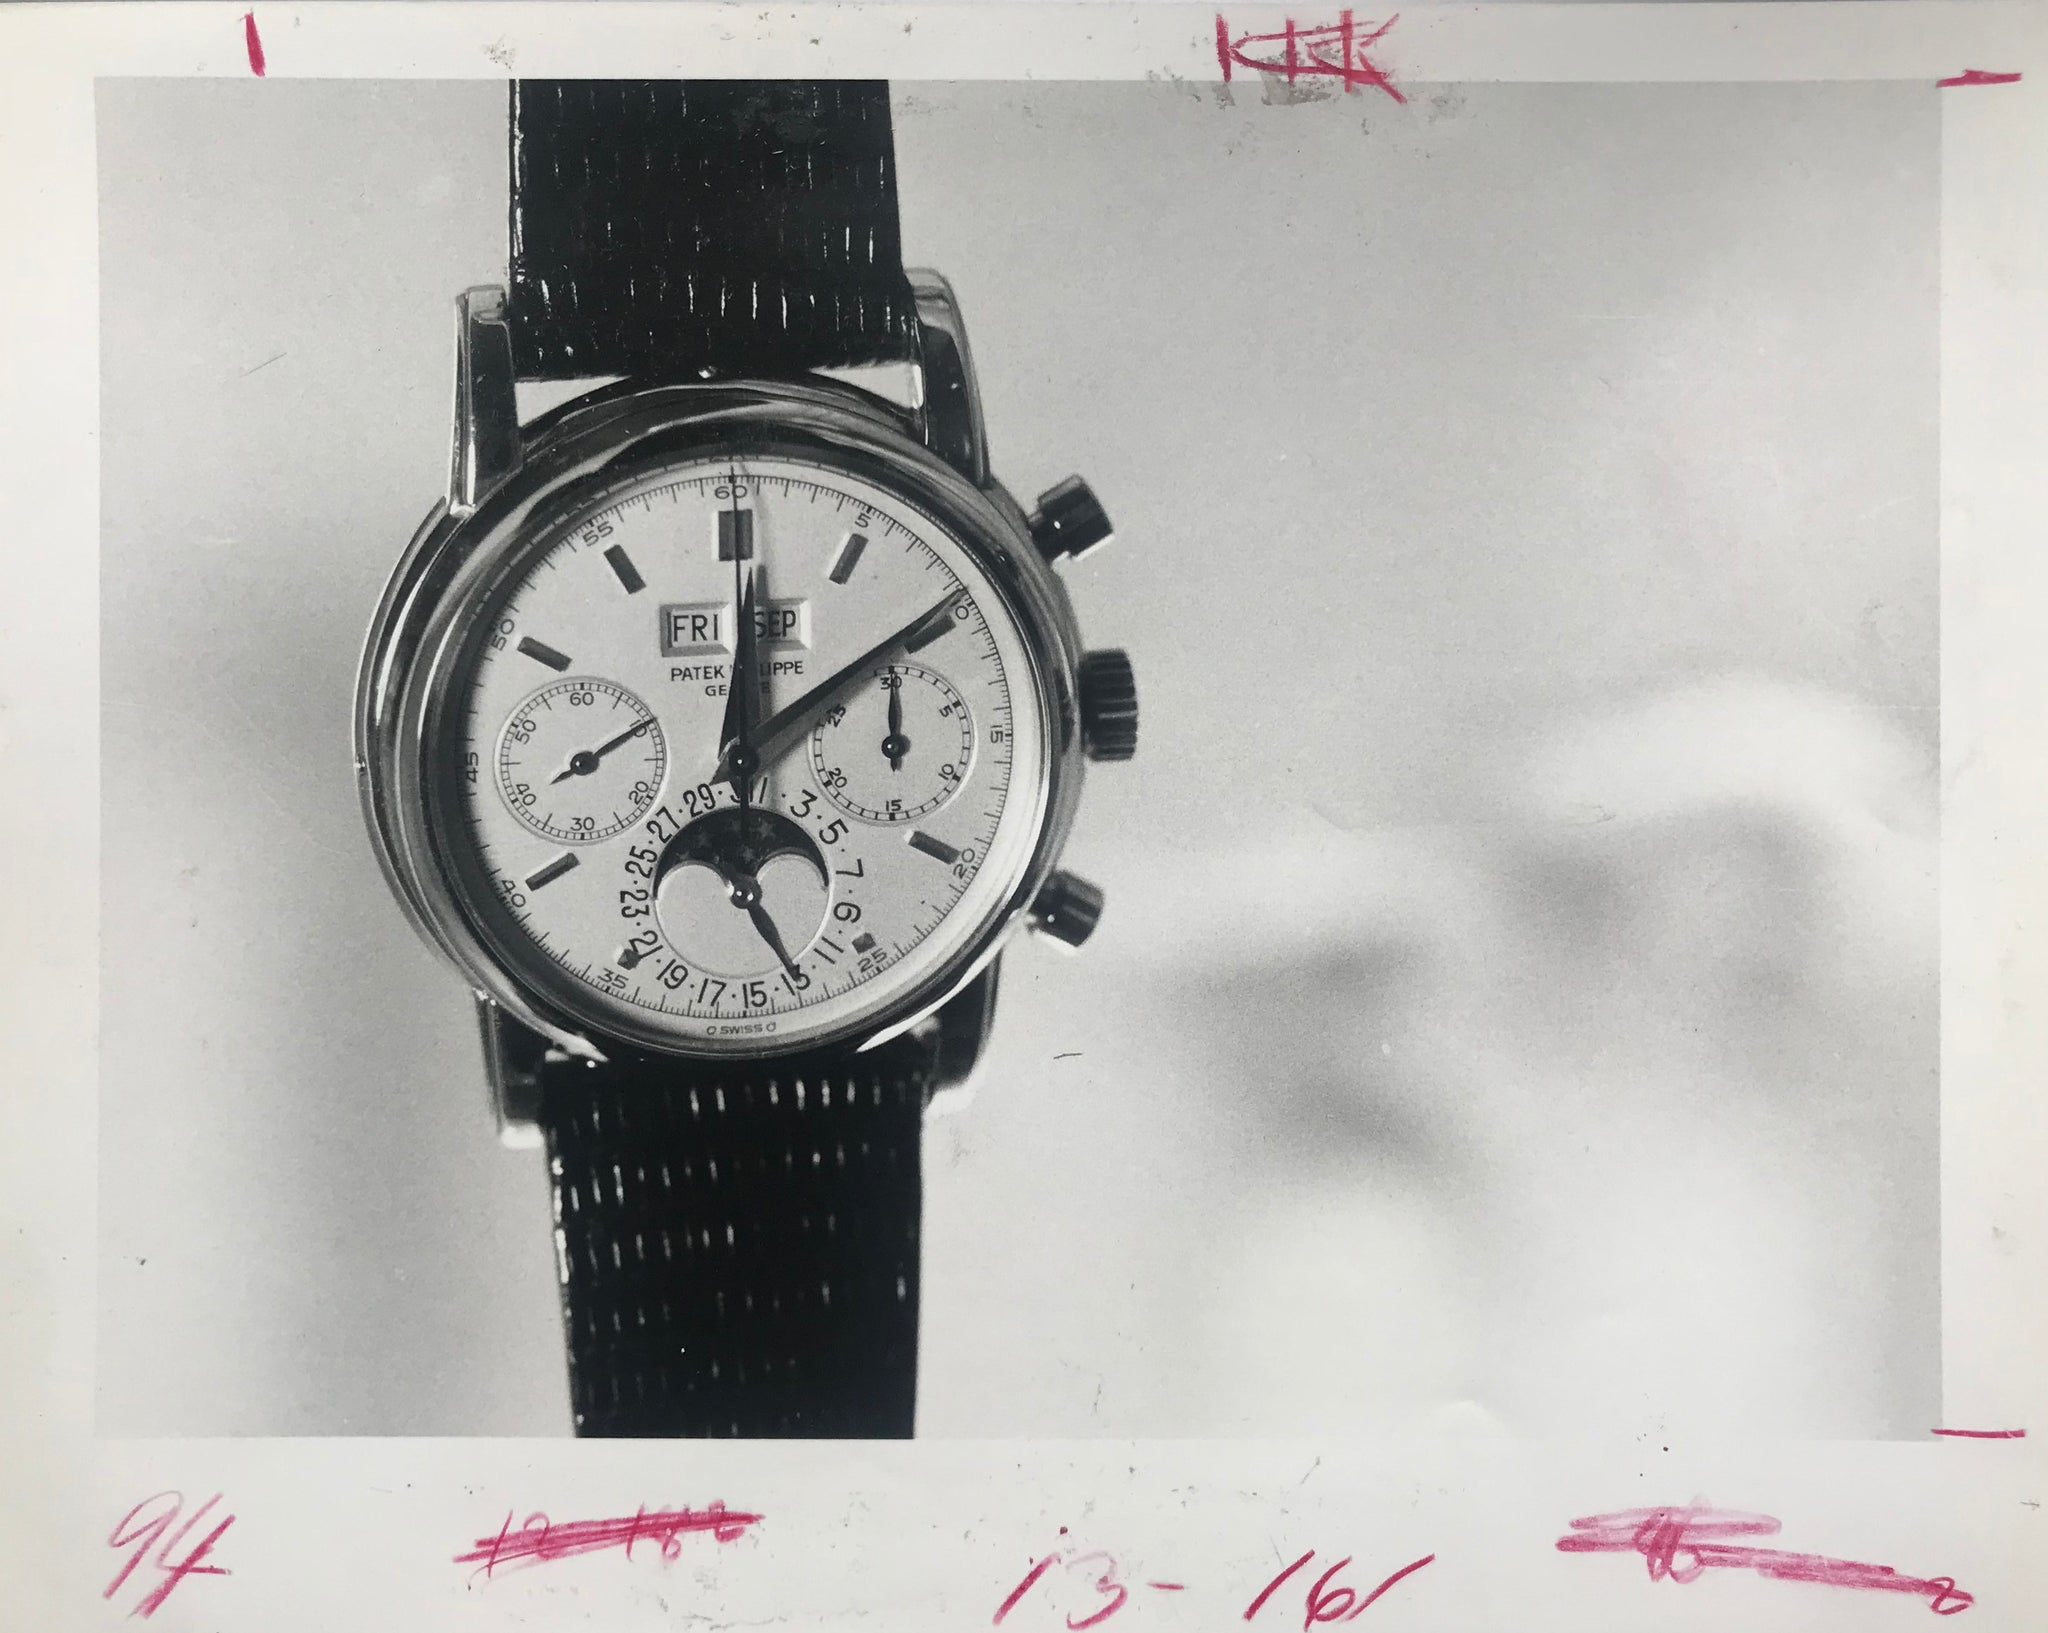 Patek Philippe ref. 2499 Fourth Series from 1985 from an original press photograph